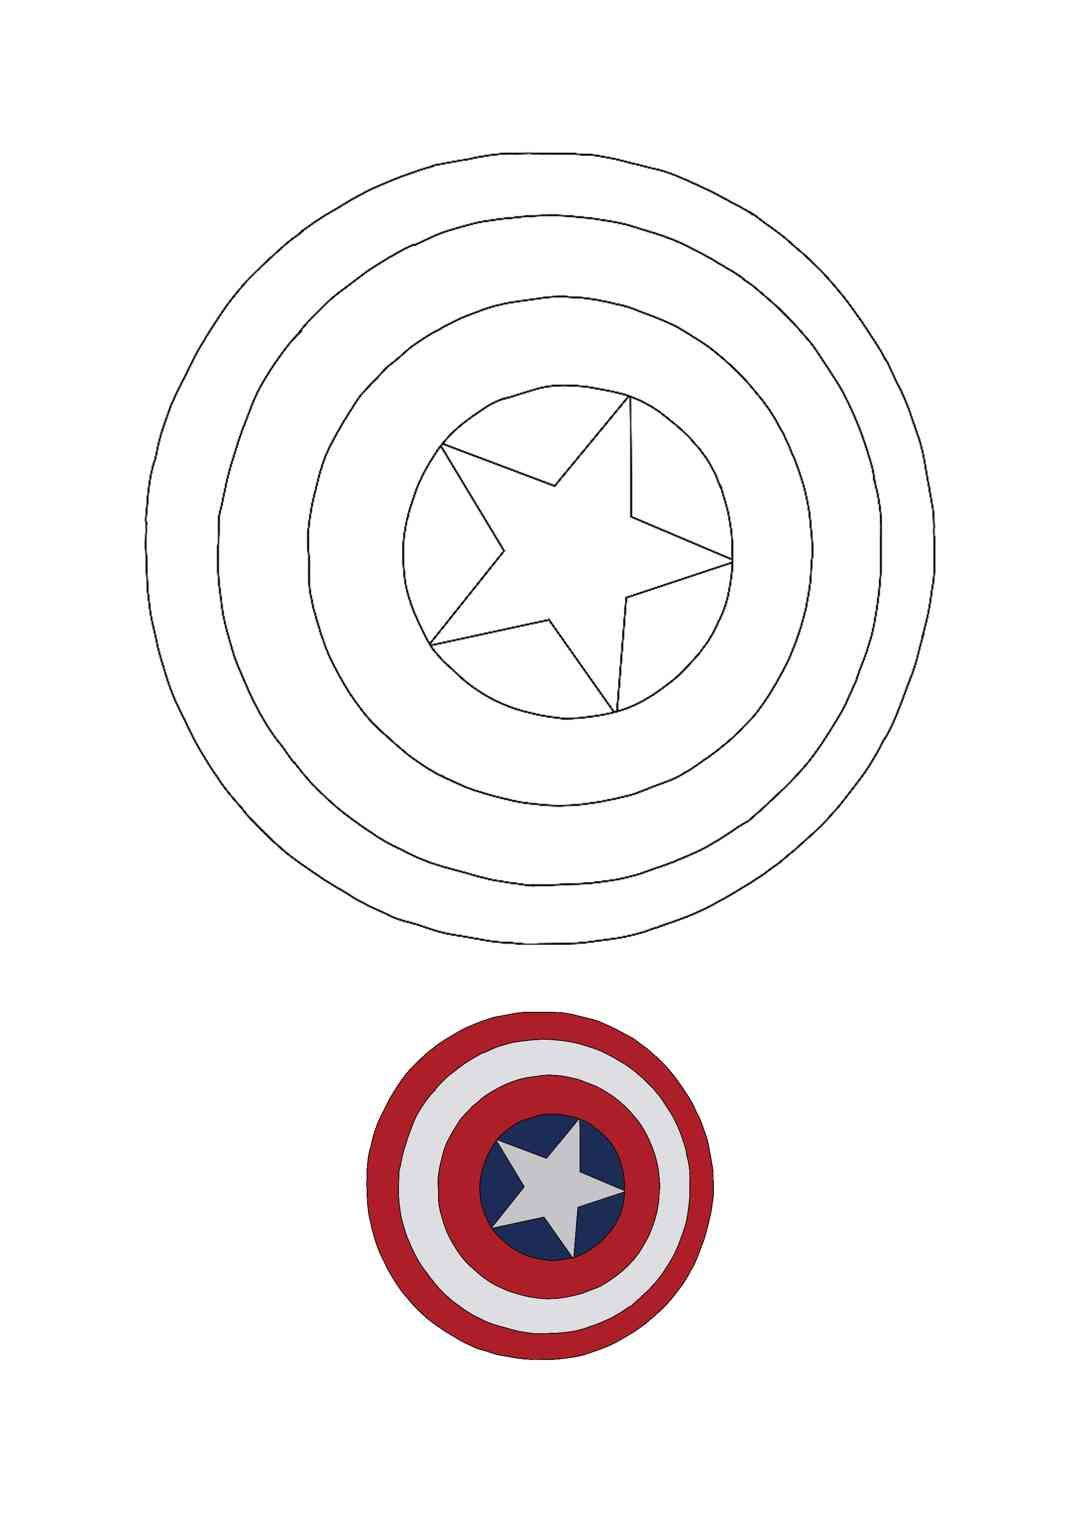 Captain America Shield Coloring Pages In 2020 Captain America Shield Captain America Coloring Pages